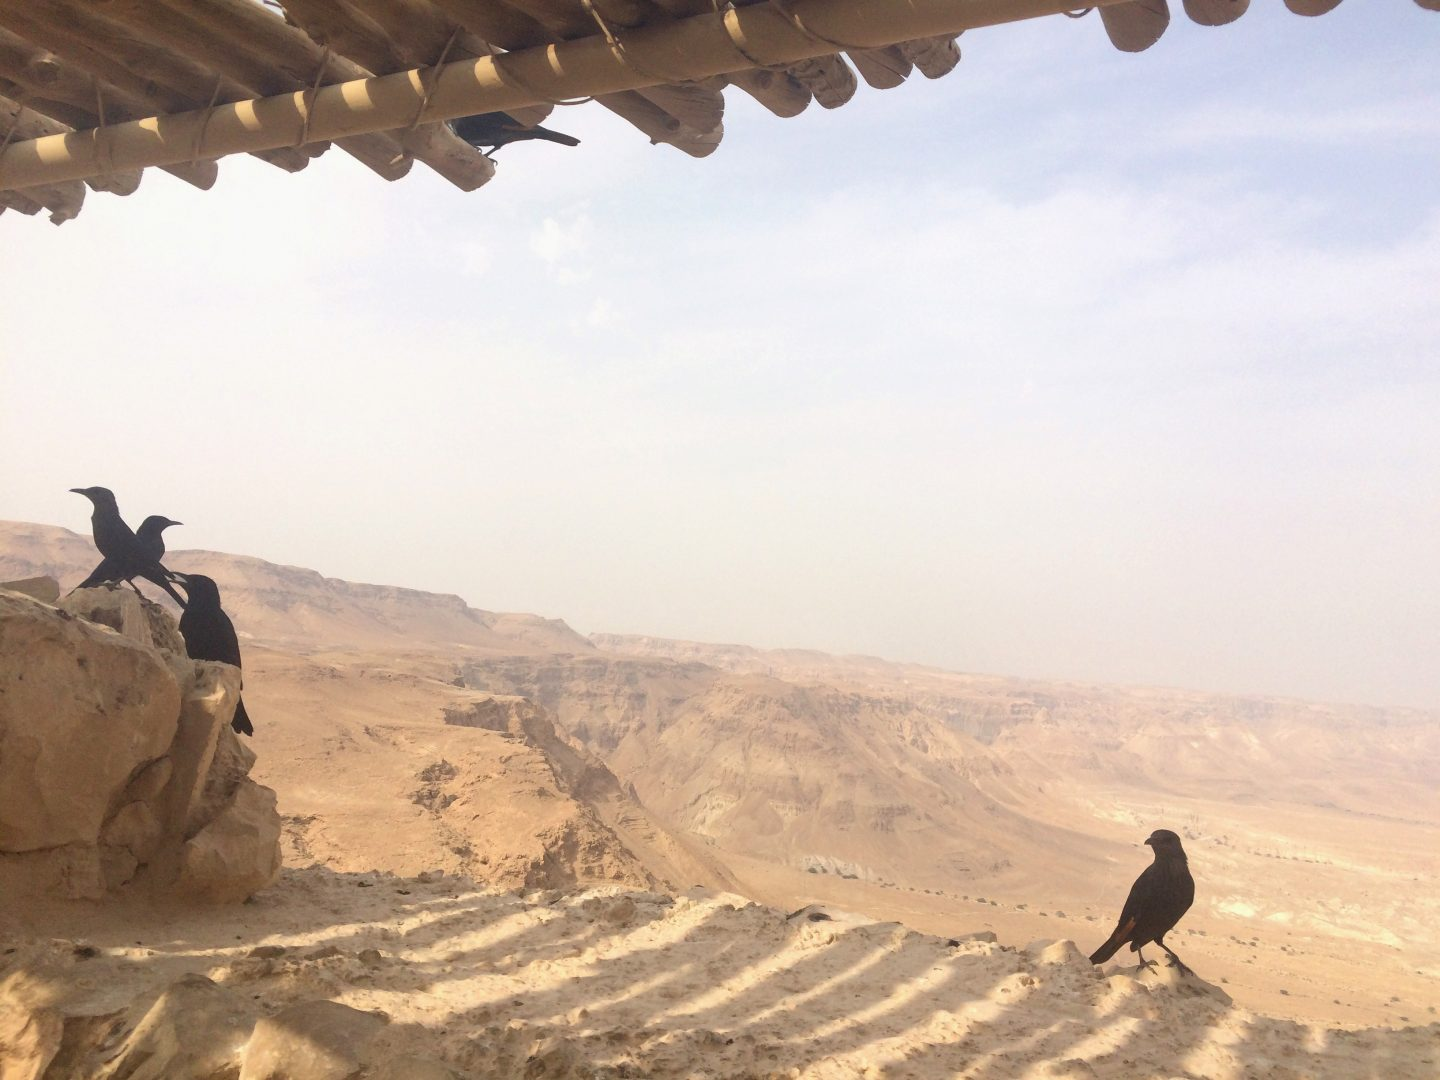 Day trip from Tel Aviv to Masada